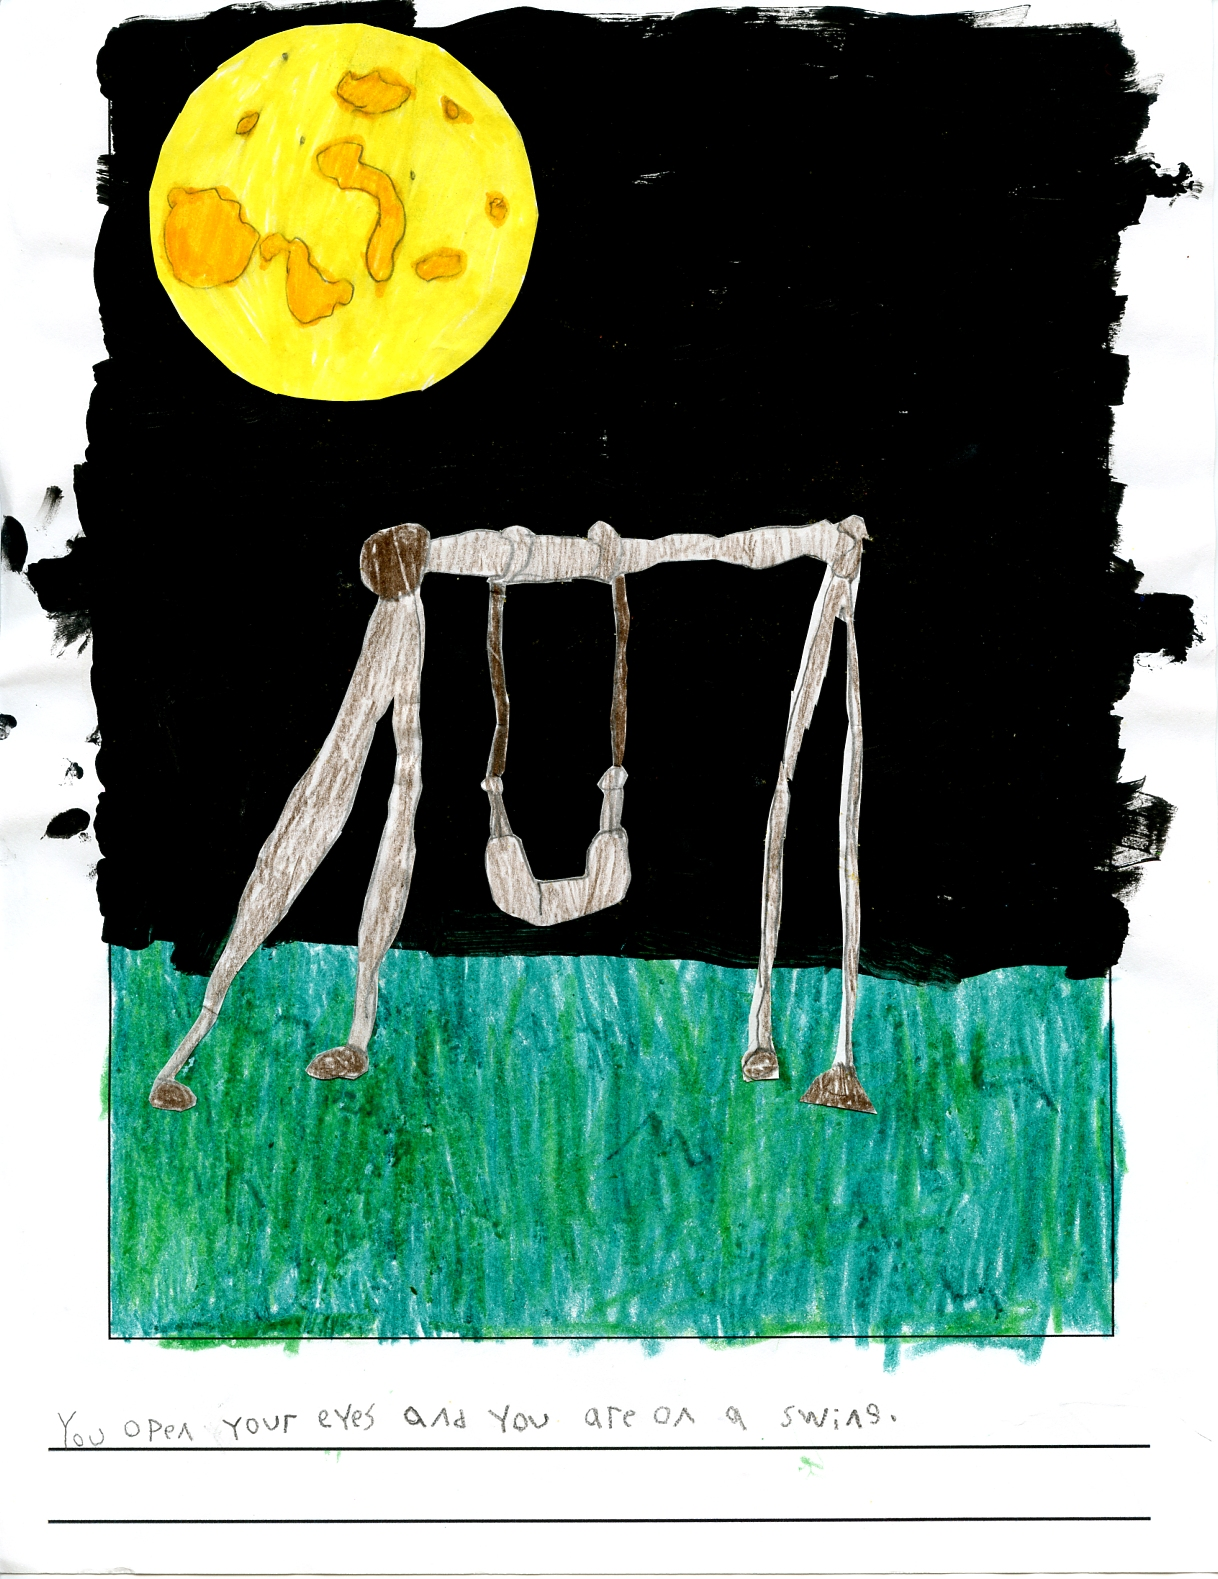 a clear sky at night with a swing set